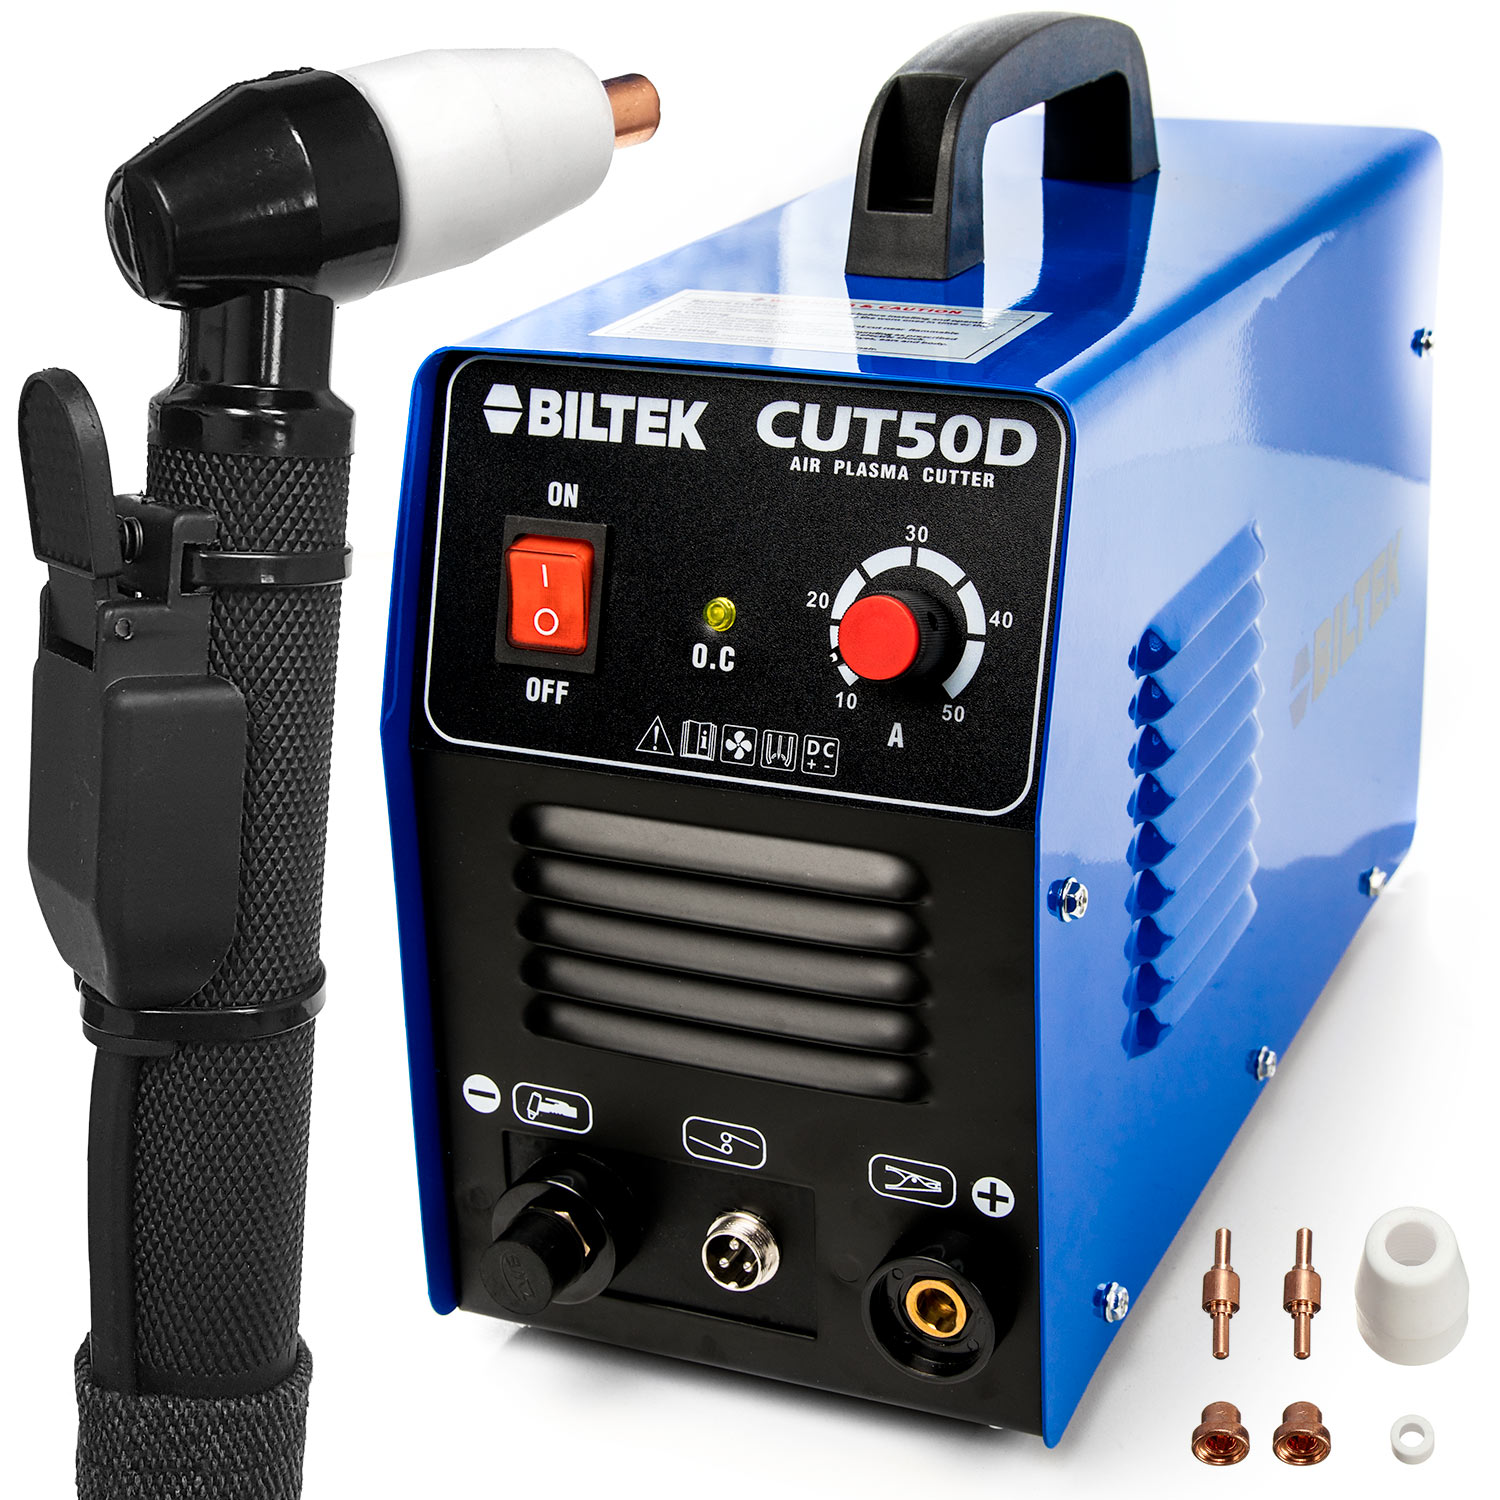 "Biltek 50Amp Air Plasma Cutter, 1/2"" Inch Cut 110V/220V Input CUT50D DC Inverter Dual Voltage with Pre-Installed 110V US Plug, Portable & Easy Quick Setup Metal Cutter"